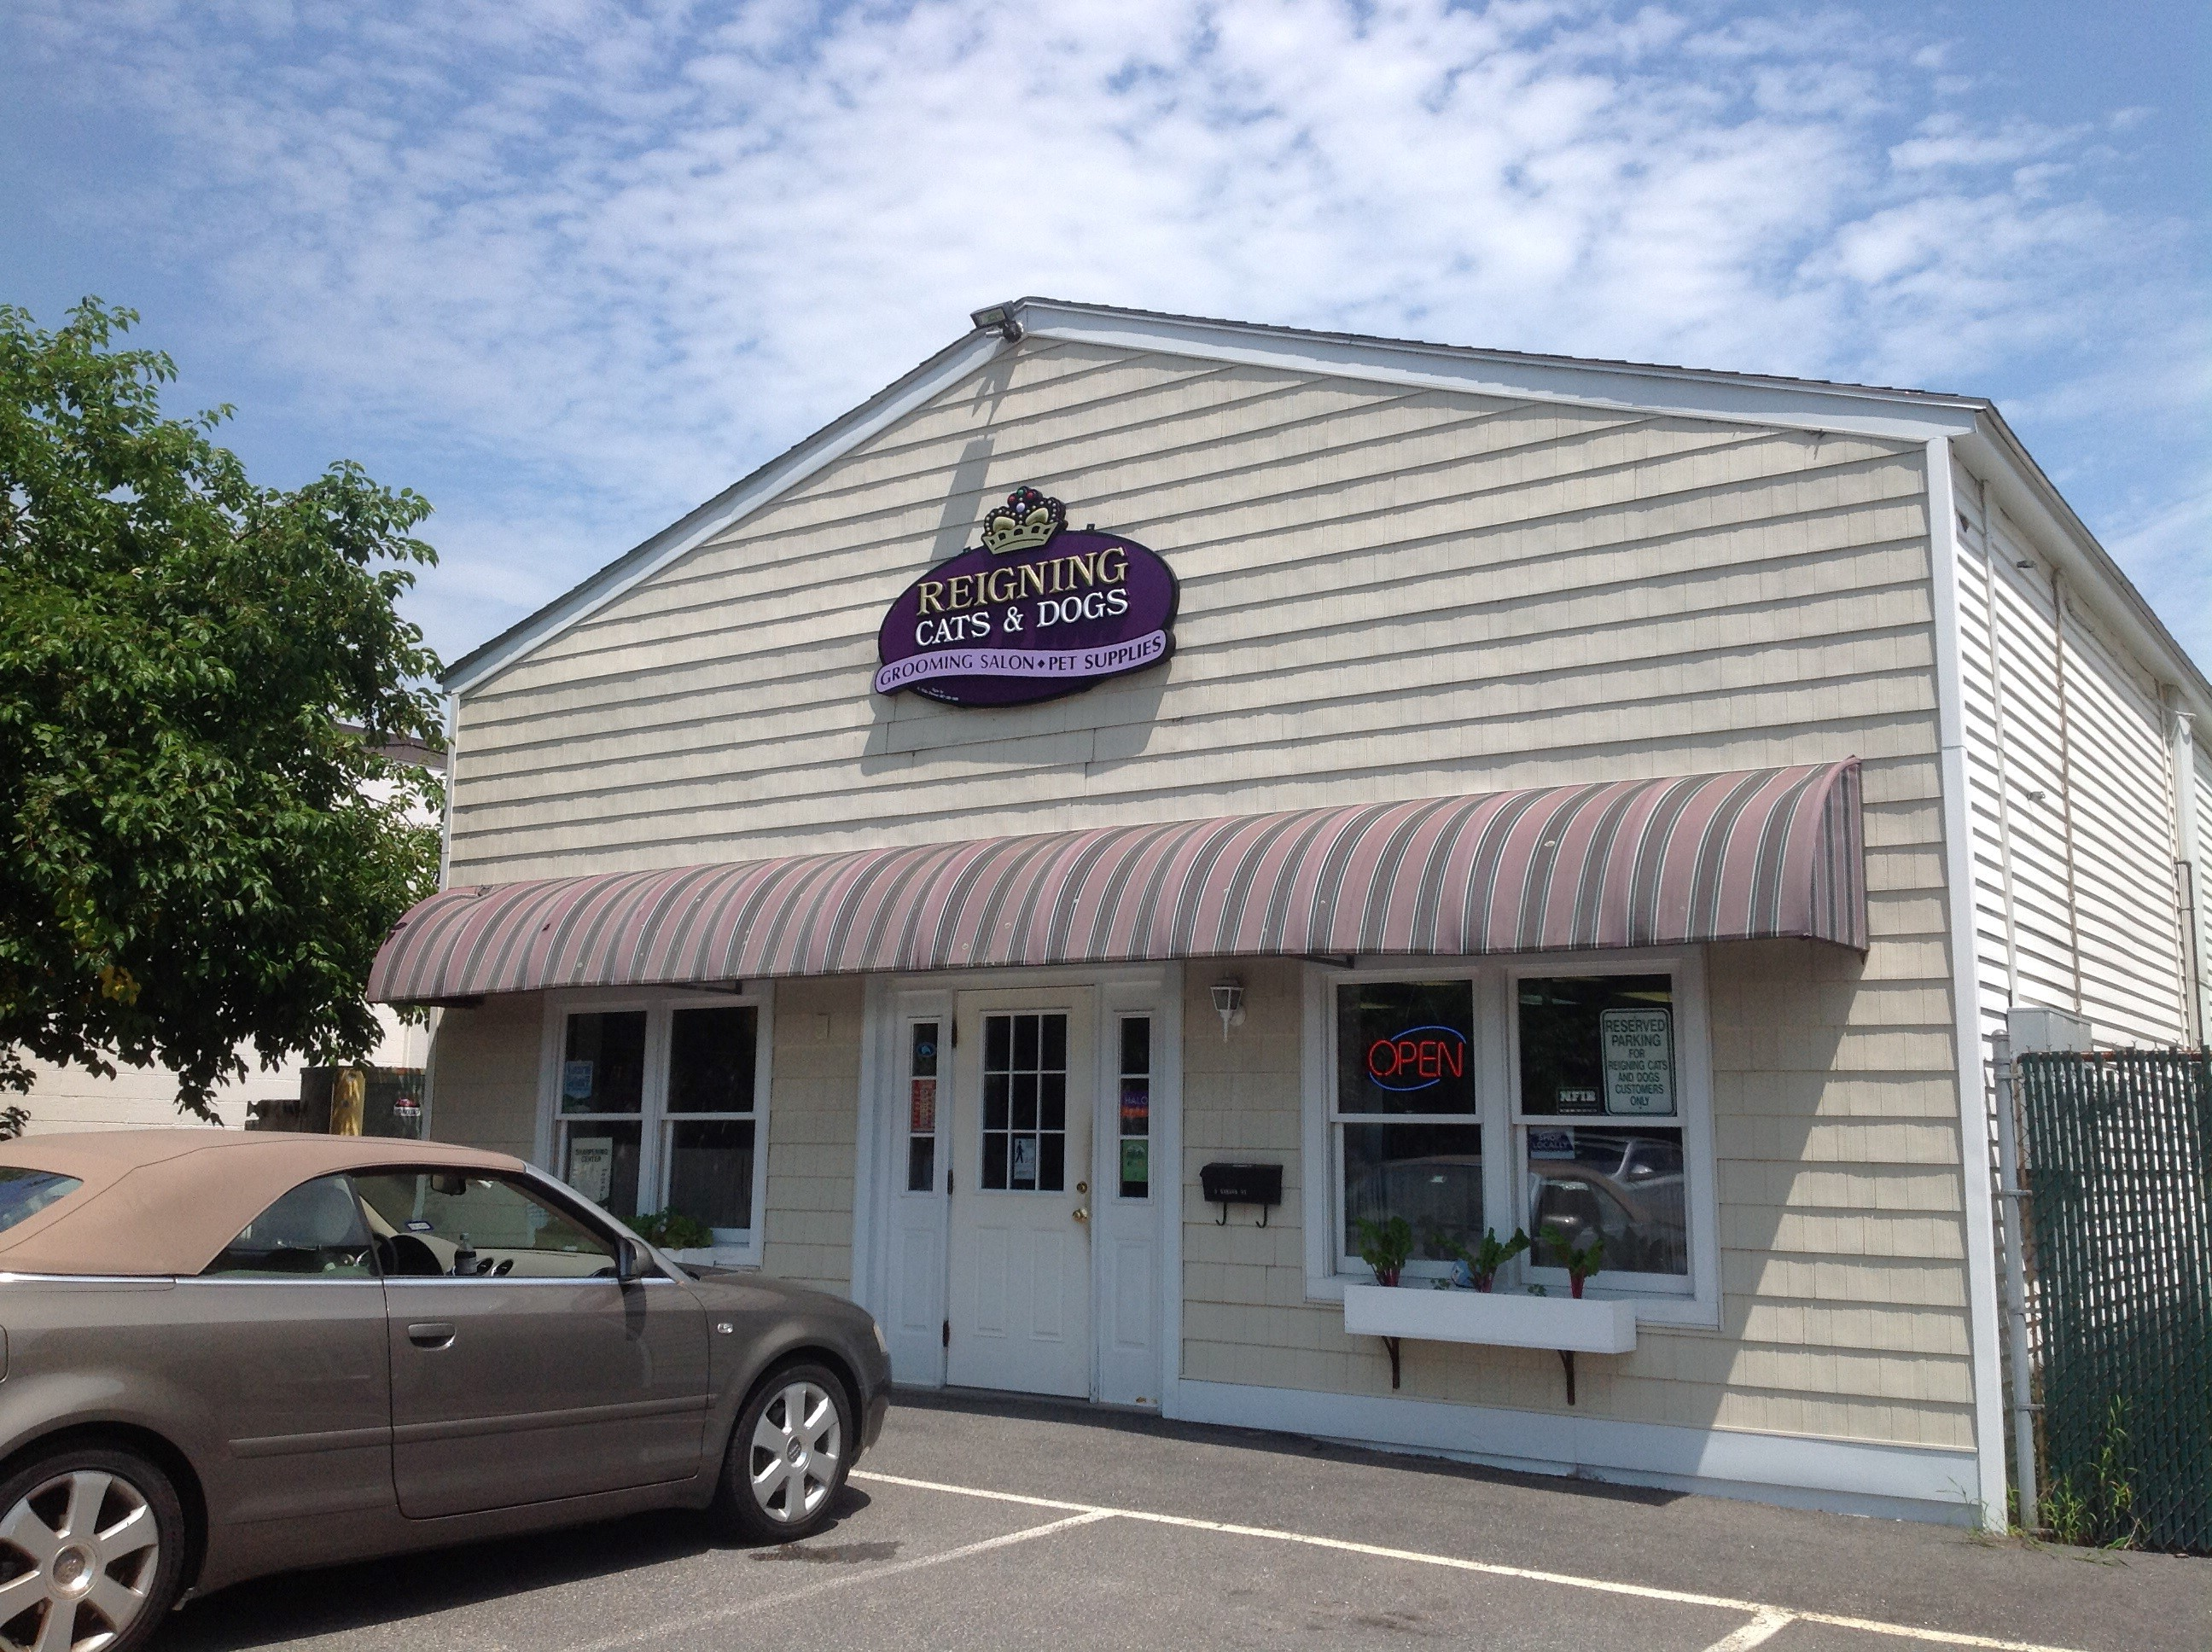 Reigning Cats And Dogs Kennebunk